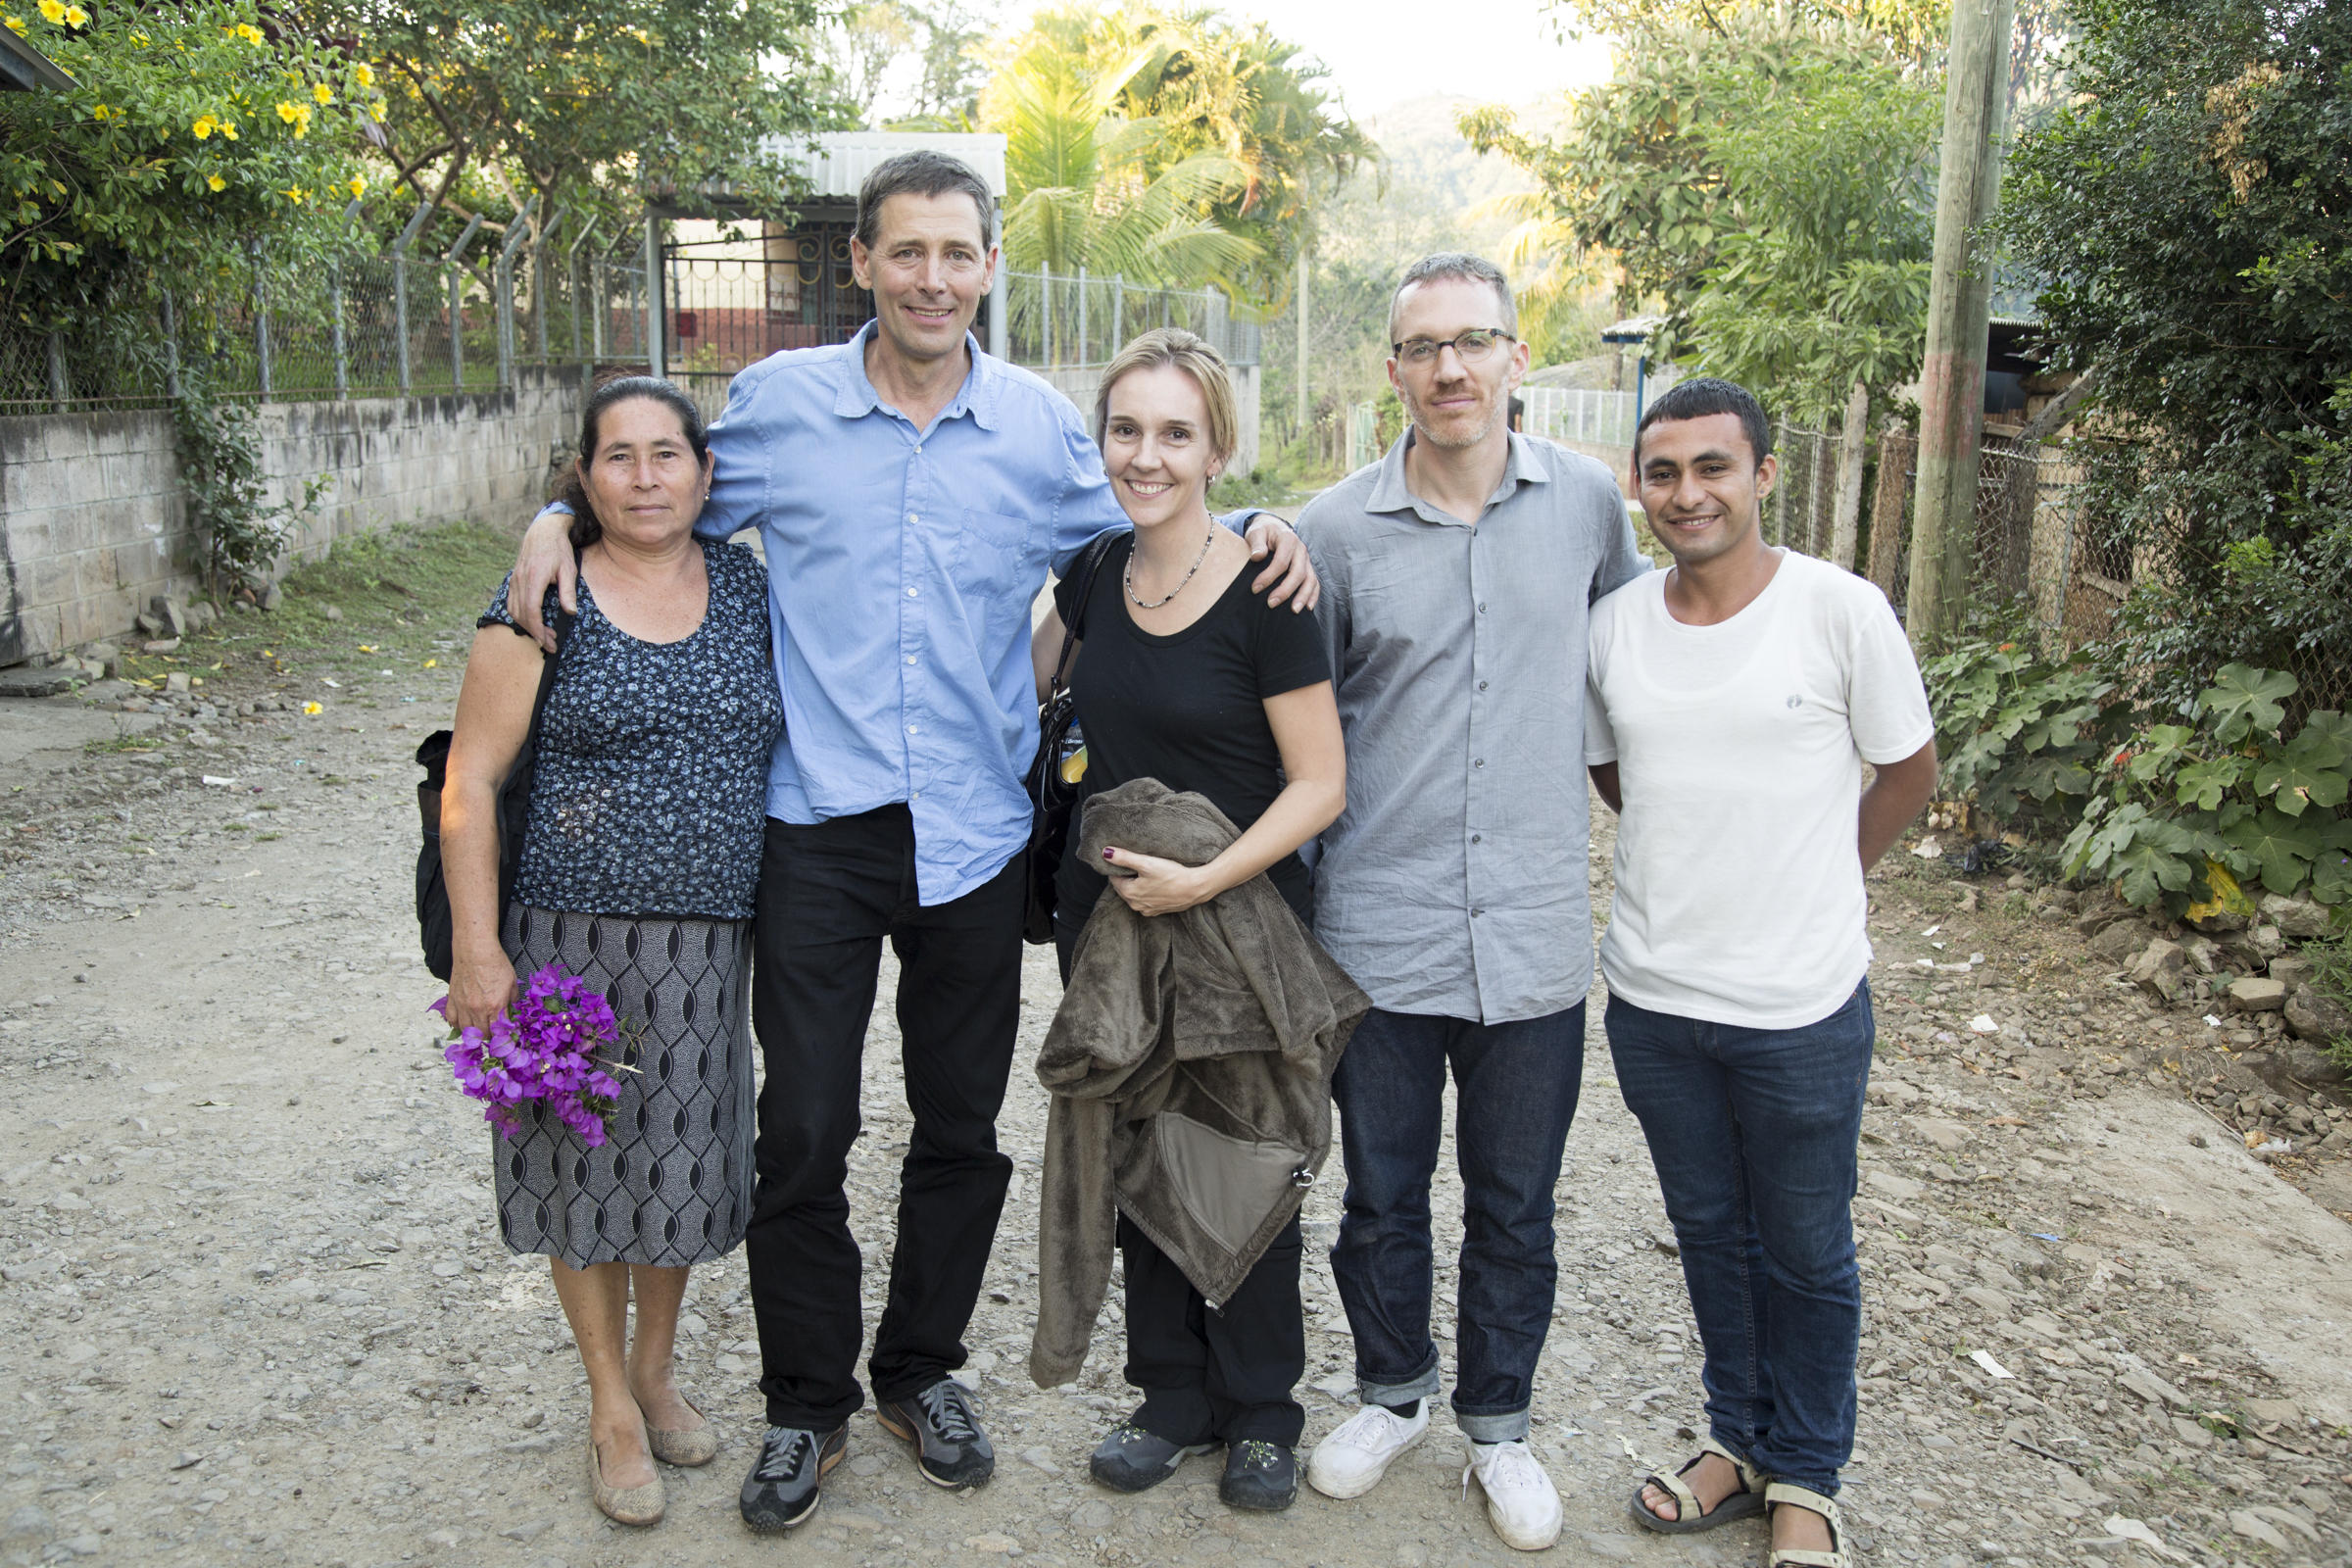 From left to right, Dora Leiva, Philippe Bourgois, Angelina Snodgrass Godoy, Alex Montalvo, and Peter Nataren following a visit to the Santa Cruz massacre site. (Photo: Keny Sibrian)